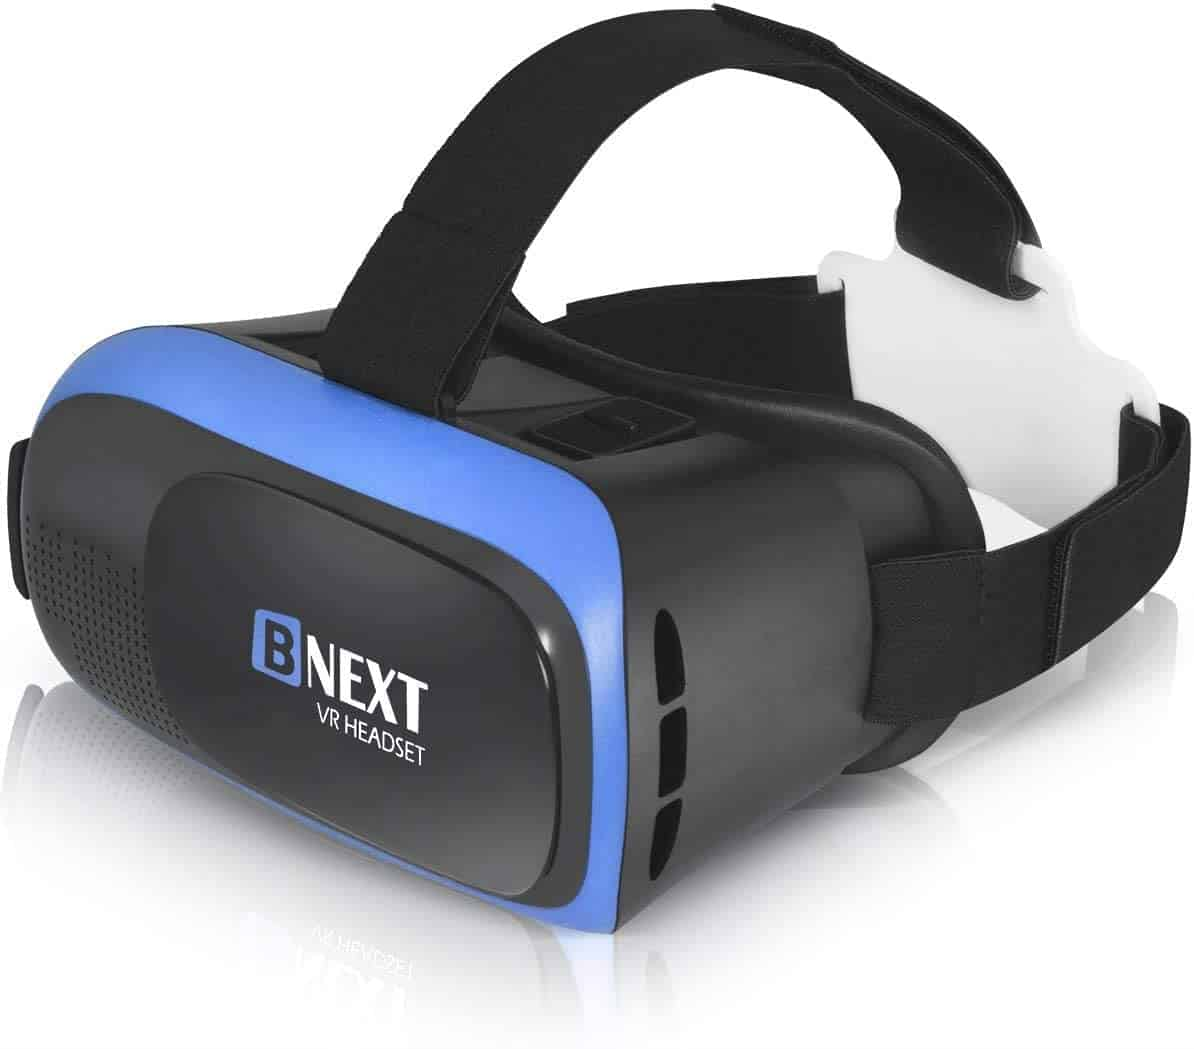 BNext Store VR Headset Compatible with iPhone